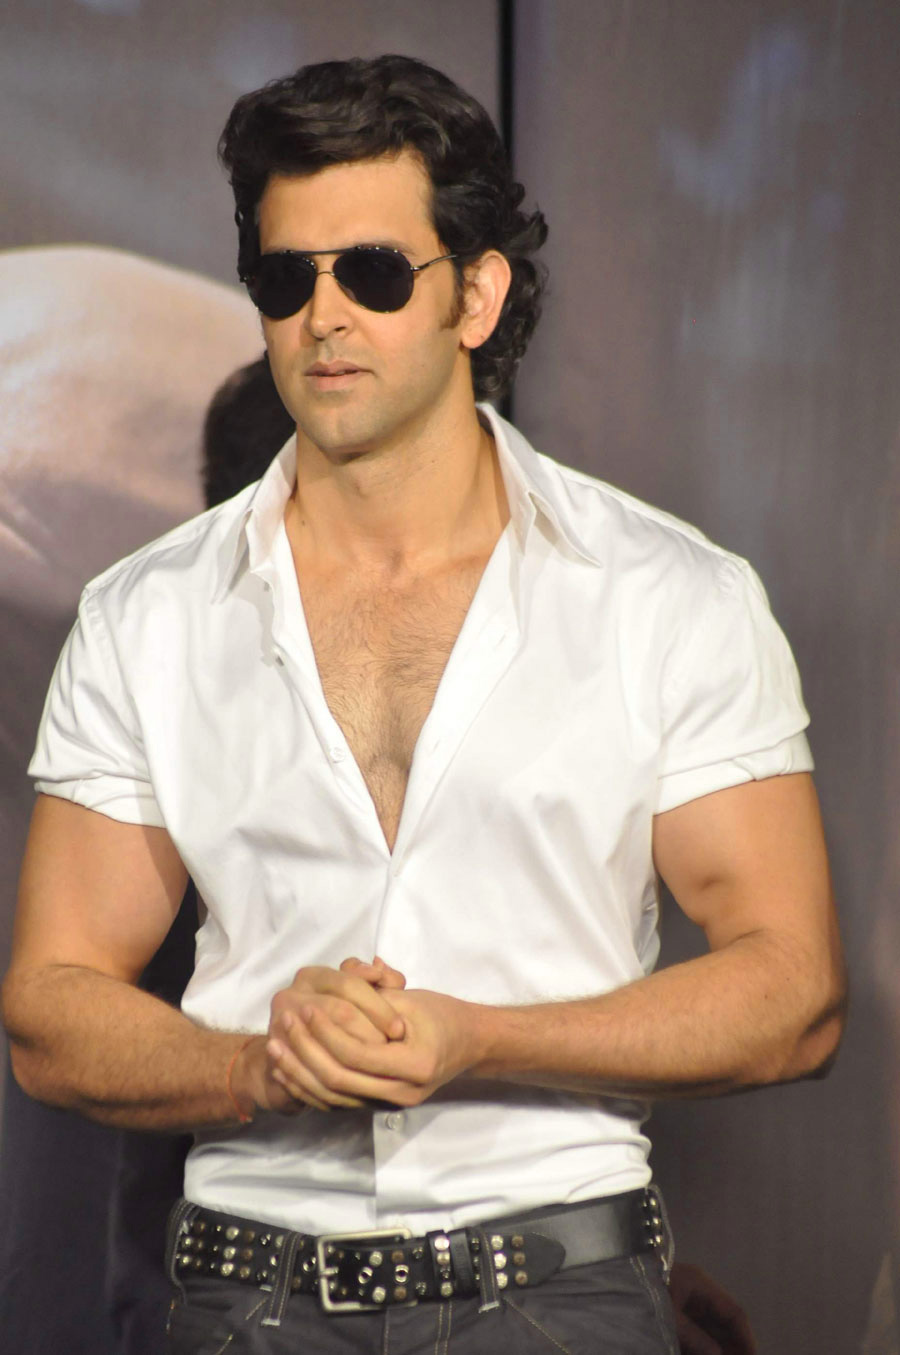 HRITHIK ROSHAN PICS FOR WHATSAPP & FACEBOOK